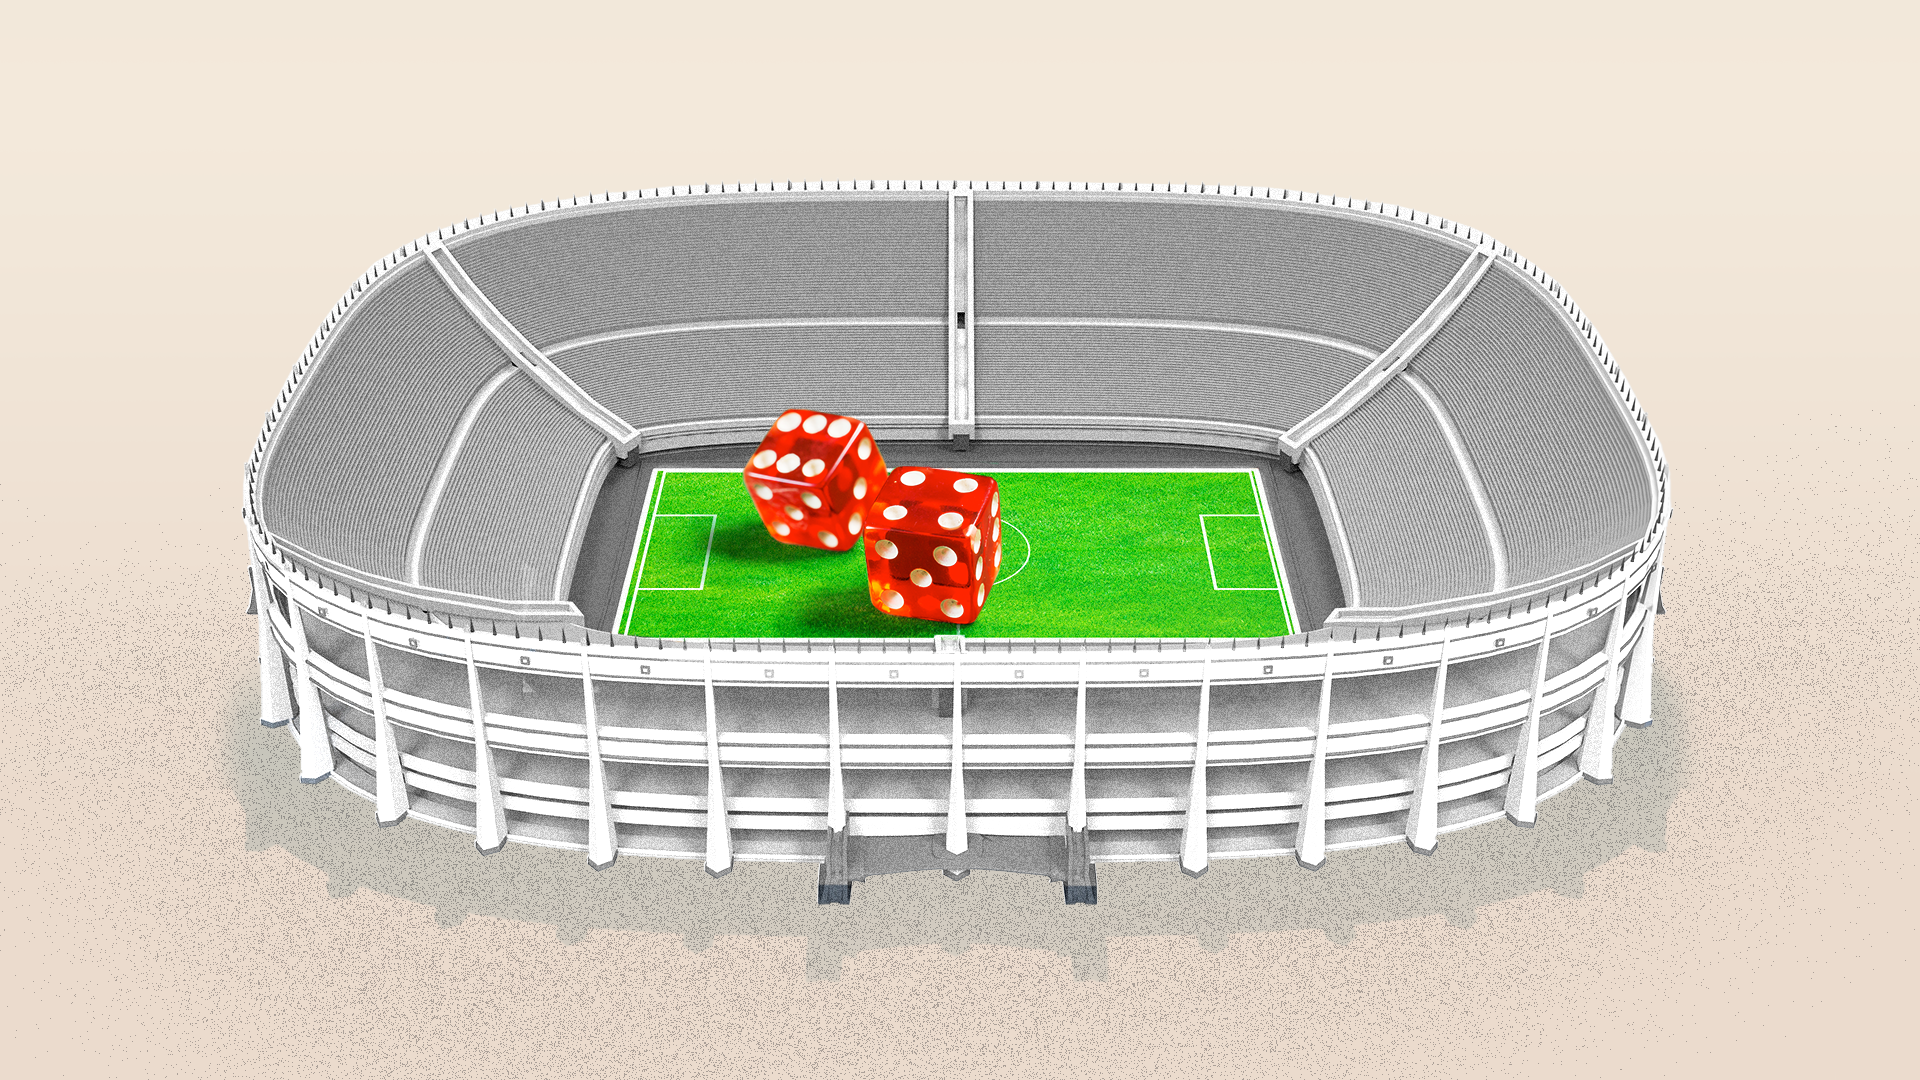 2f38a8d1d3 A graphic of a stadium with large dice rolling through the middle.